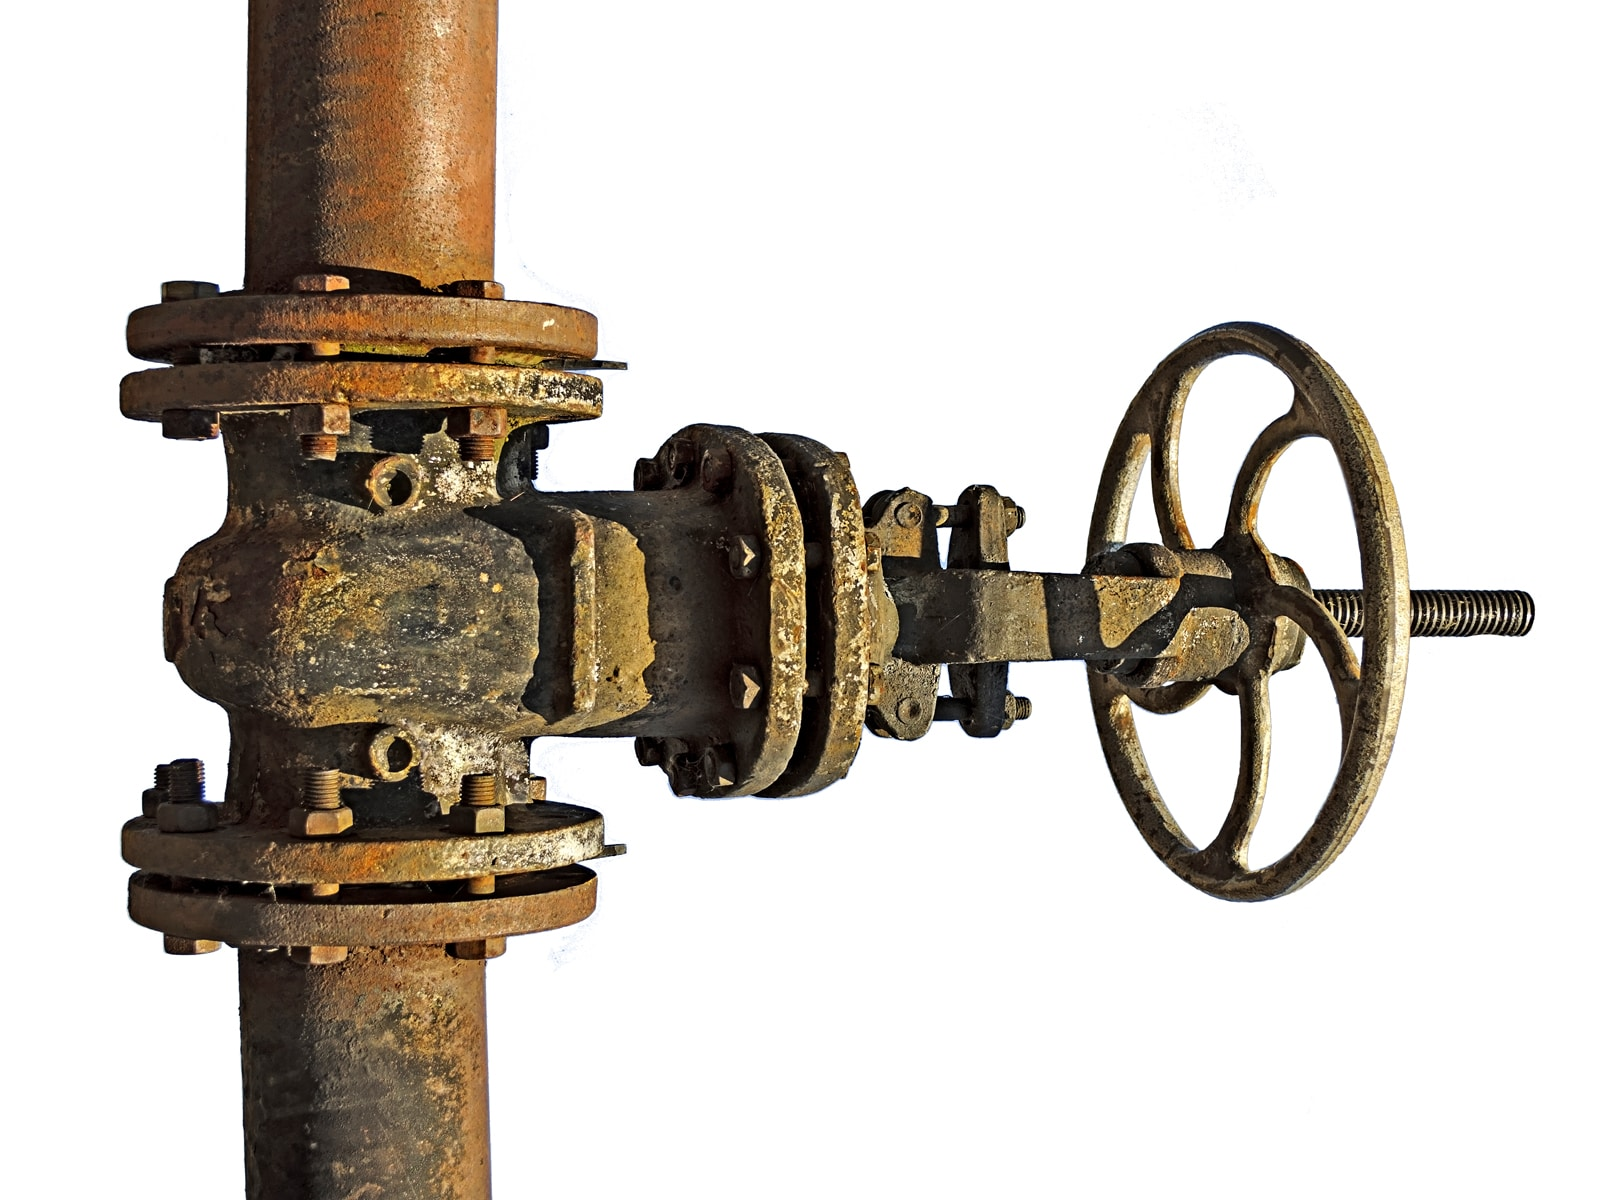 types of water valves